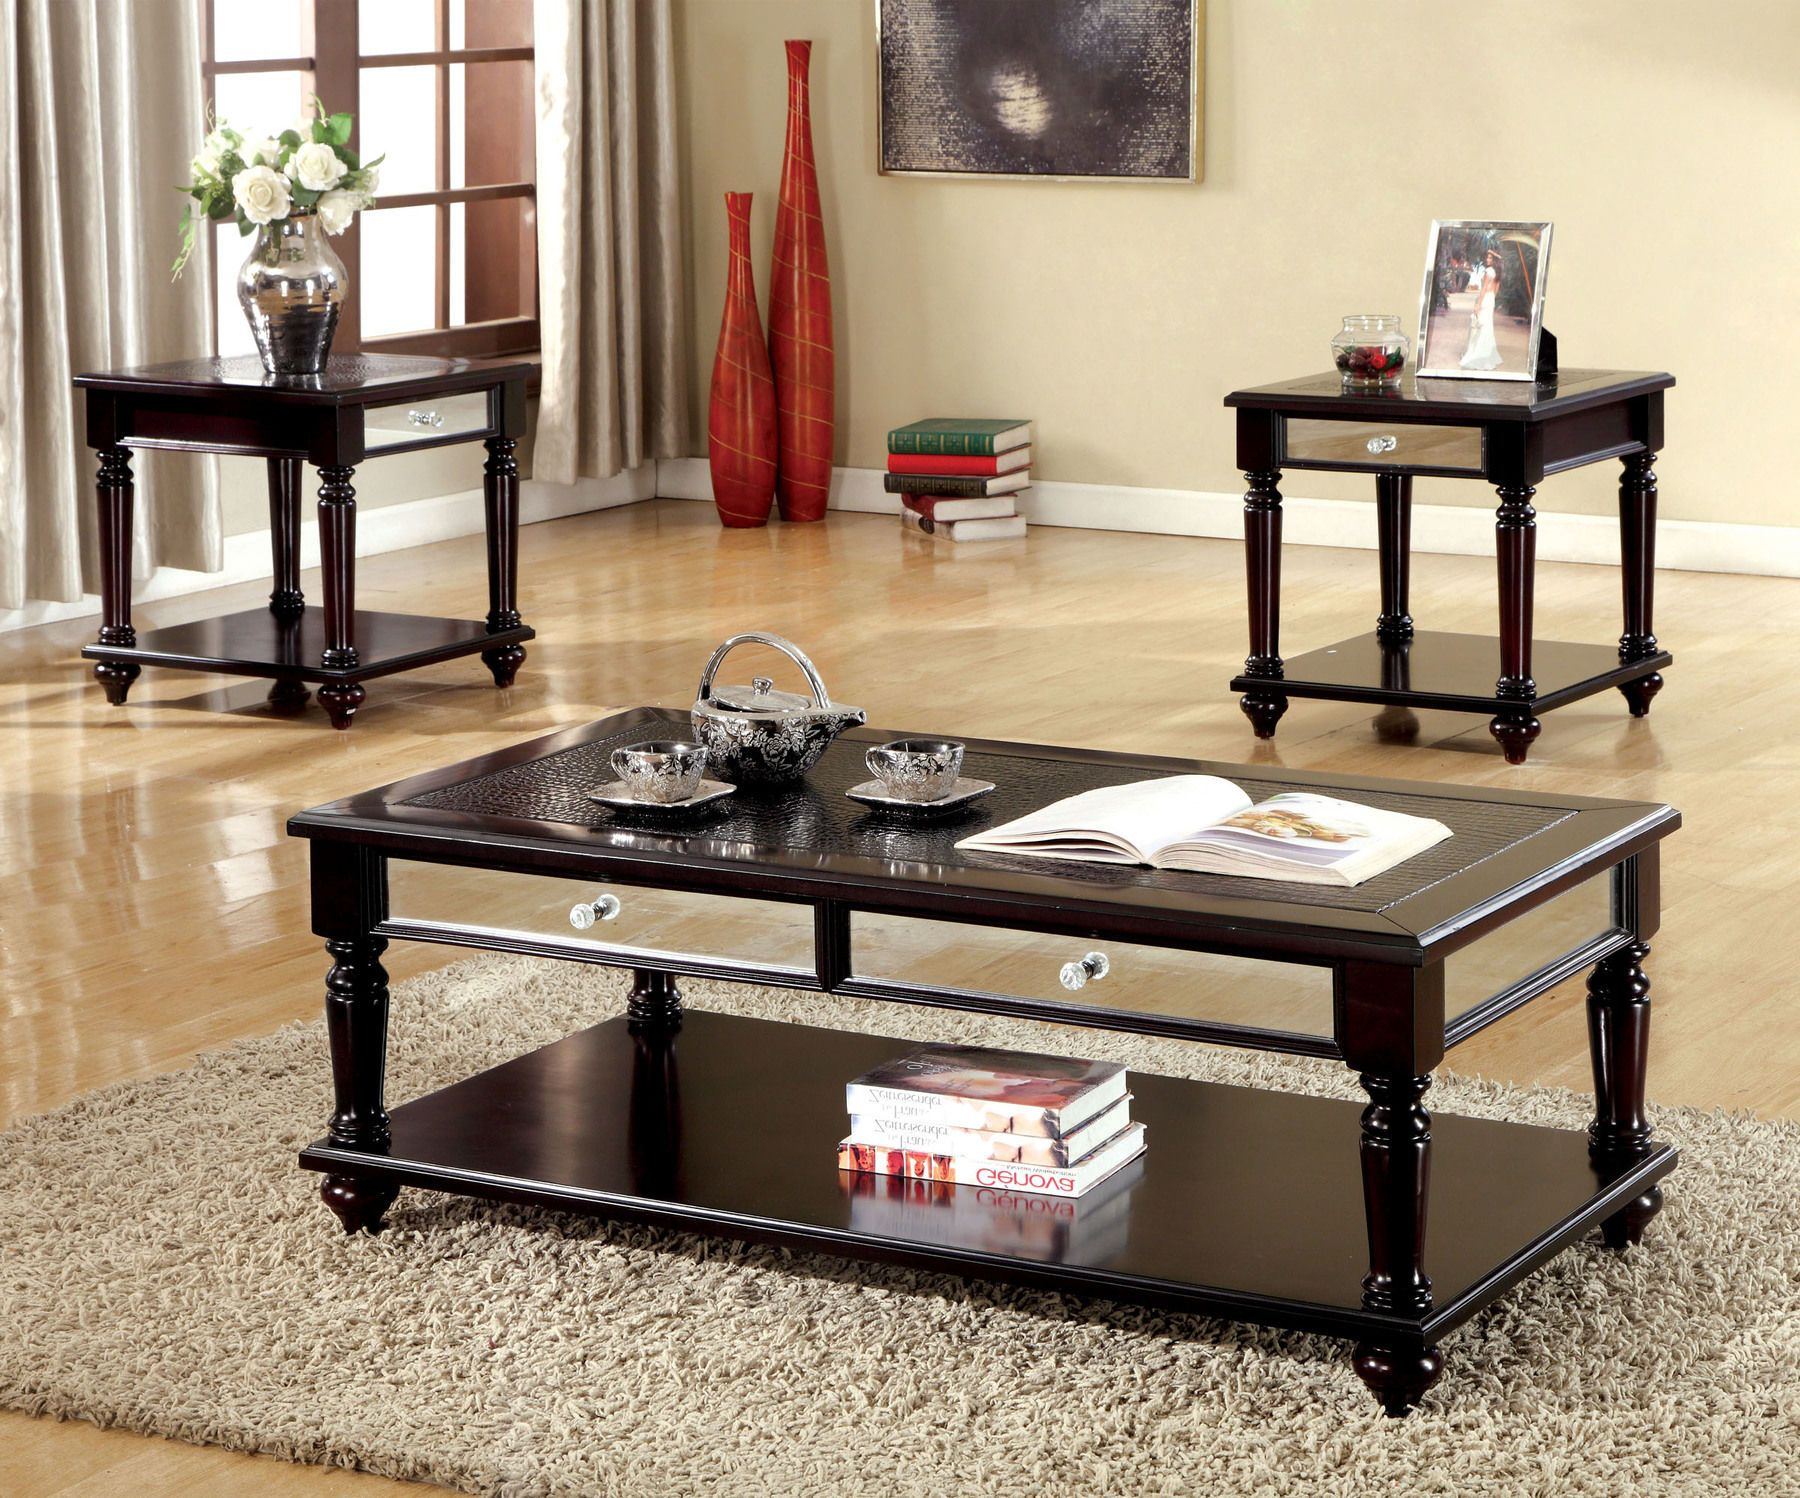 Horace Coffee Table 2 End Tables Cm4242 Furniture Of America Coffee Tables Coffee Table 3 Piece Coffee Table Set Coffee Table Setting [ 1498 x 1800 Pixel ]